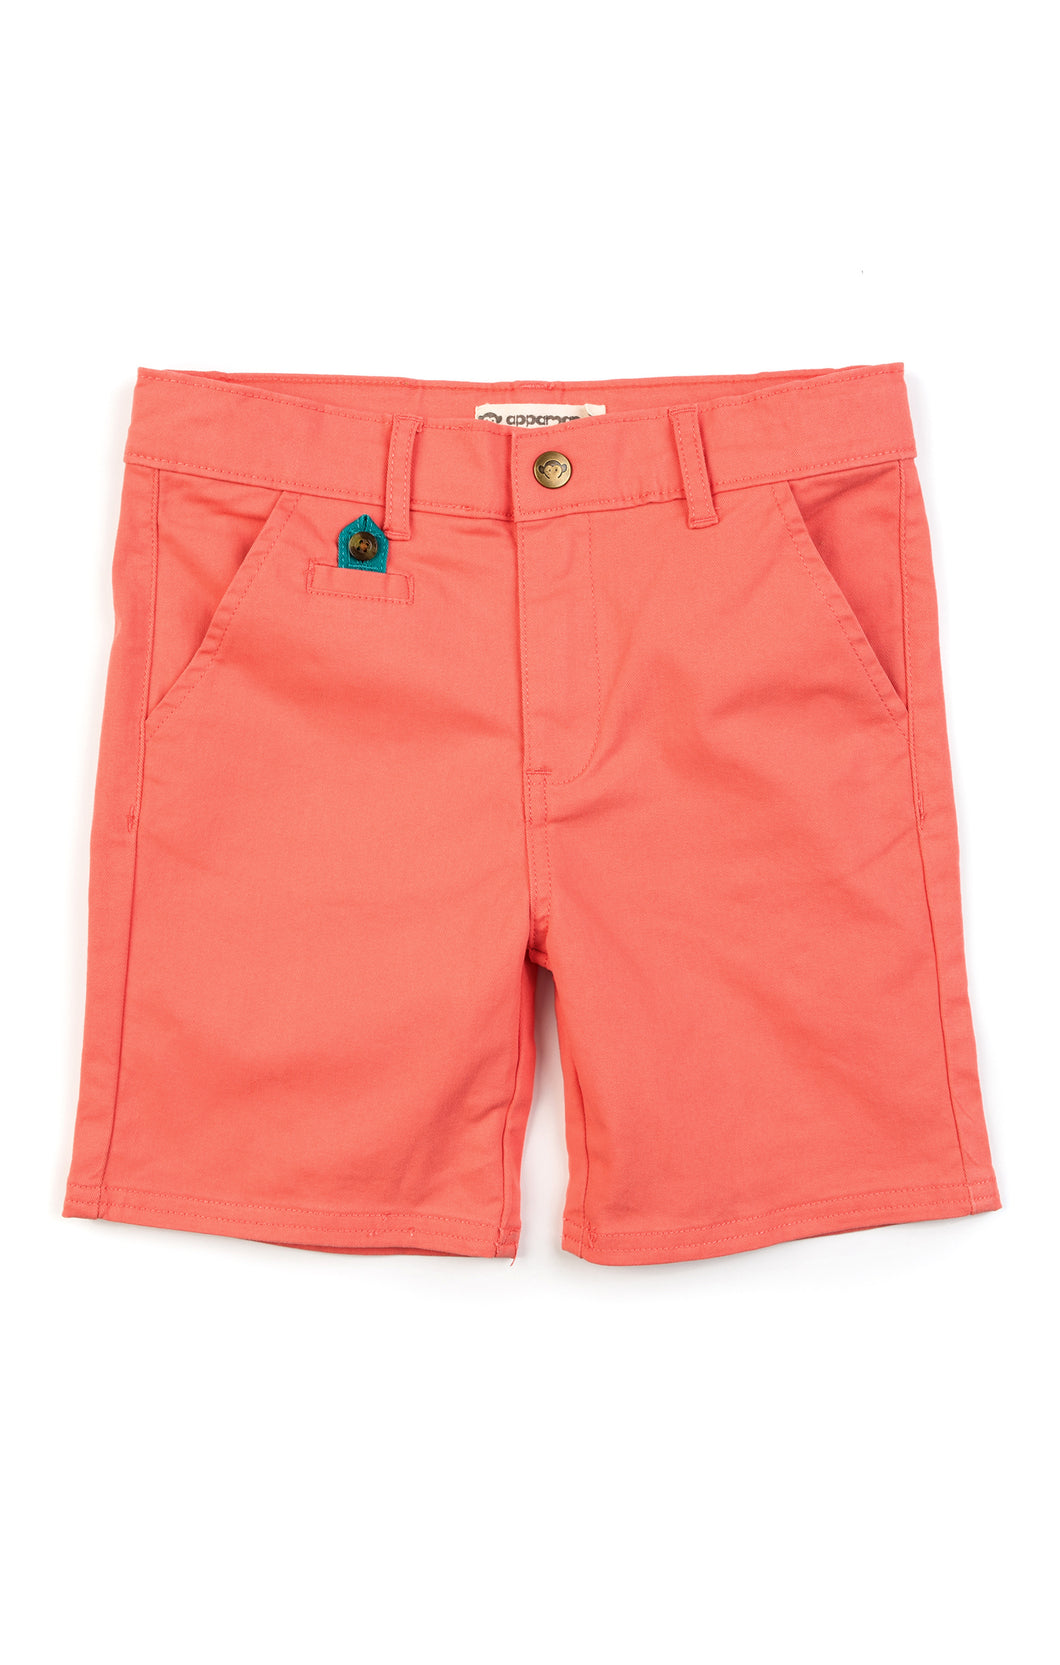 Appaman Salmon Harbor shorts